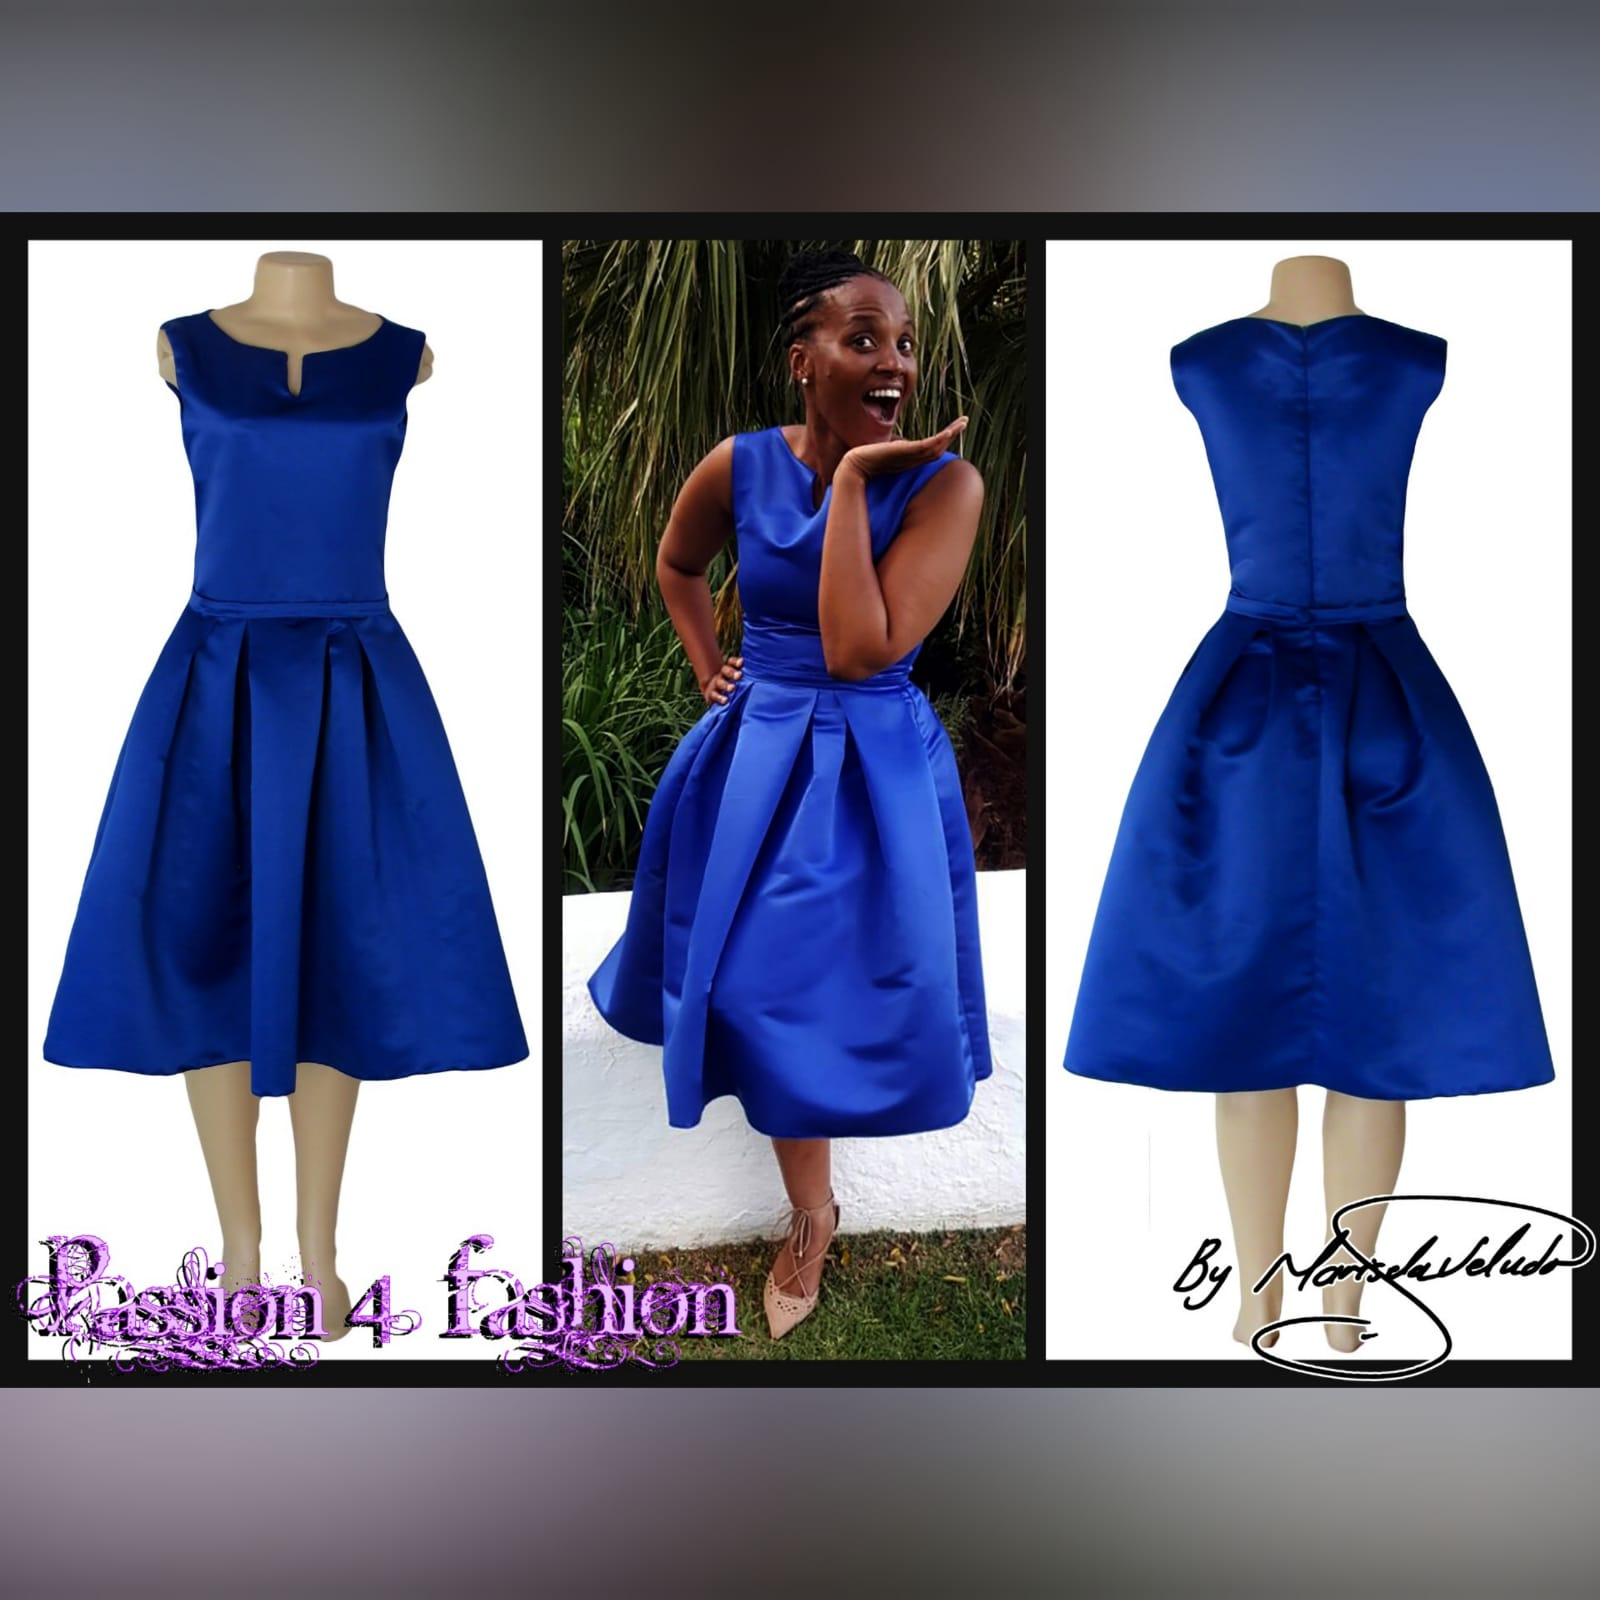 Royal blue 3/4 length pleated evening dress 2 royal blue 3/4 length pleated evening dress with a fitted bodice with a slit rounded neckline.